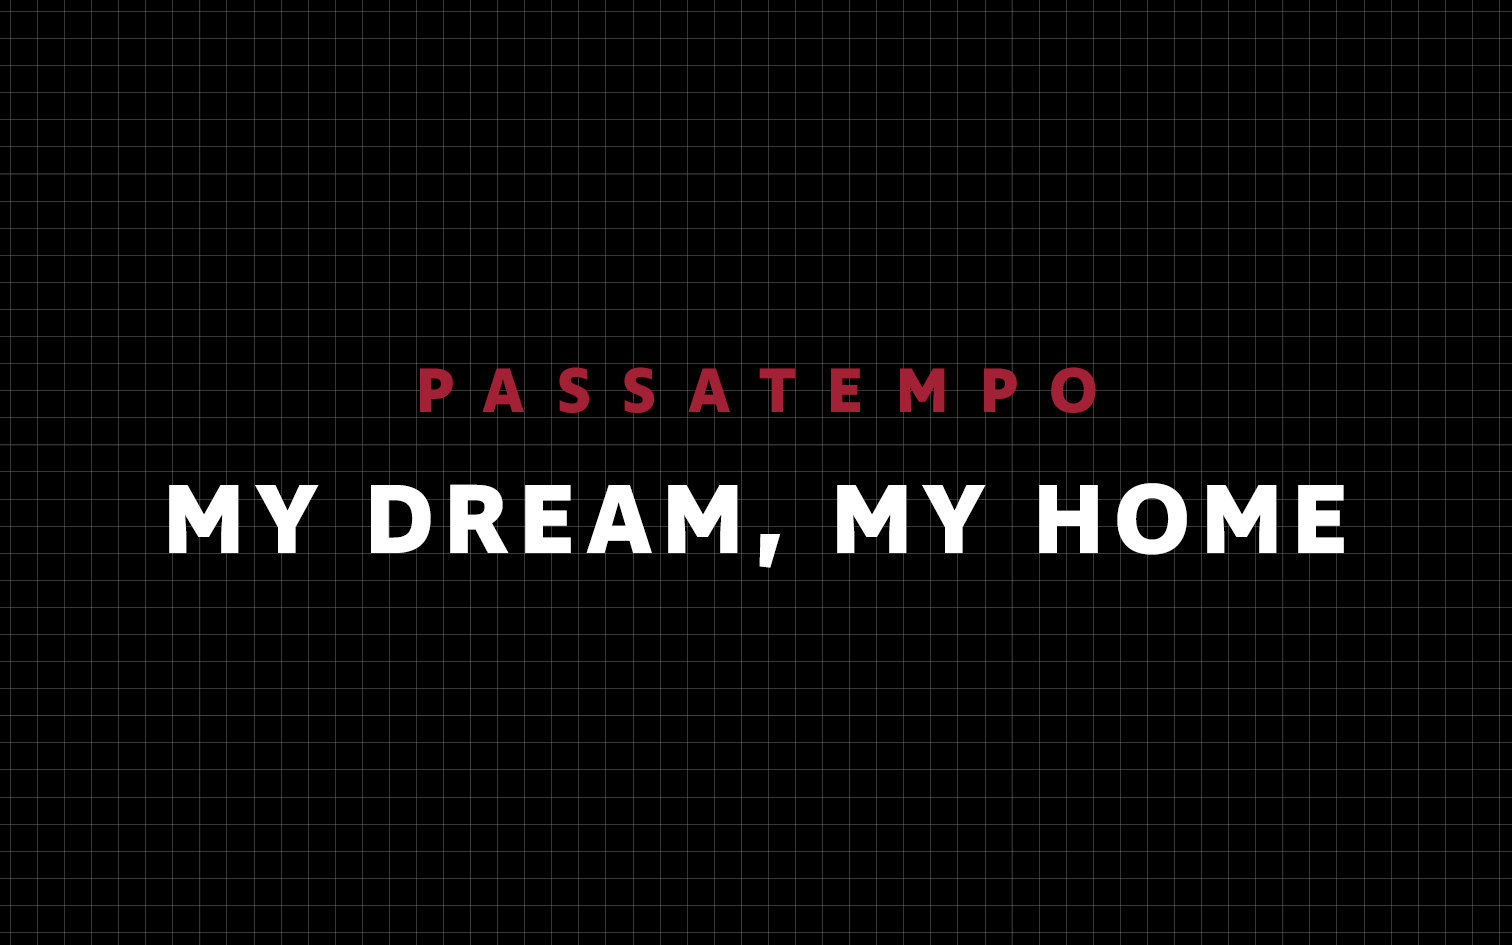 Passatempo: MY DREAM, MY HOME